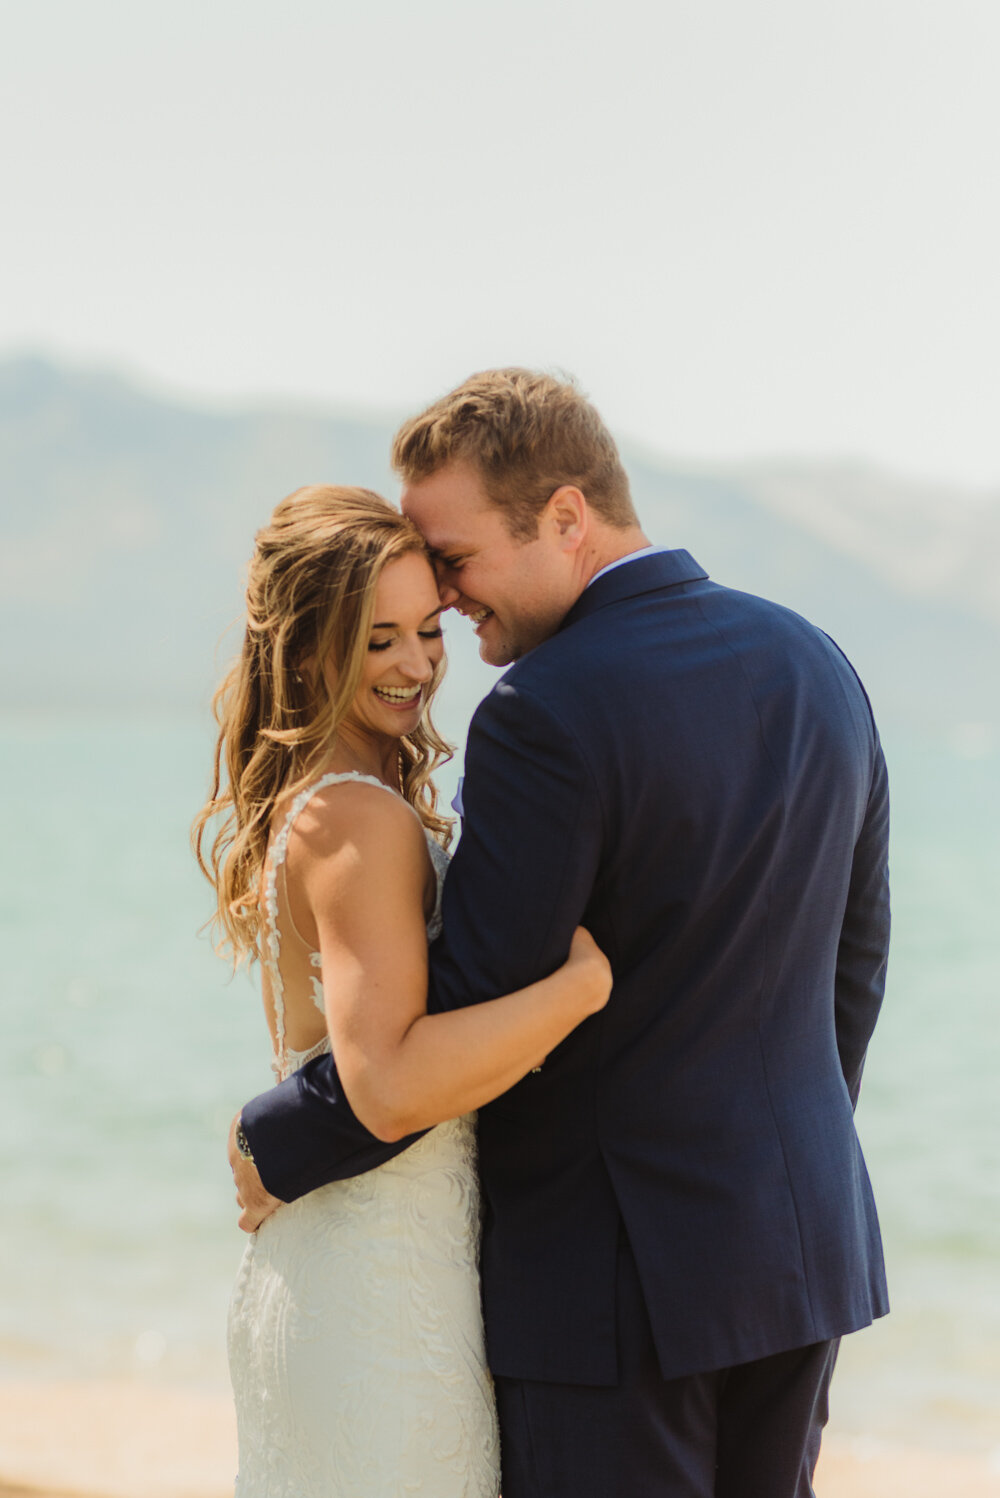 Edgewood Tahoe Wedding, close up photo of bride and groom